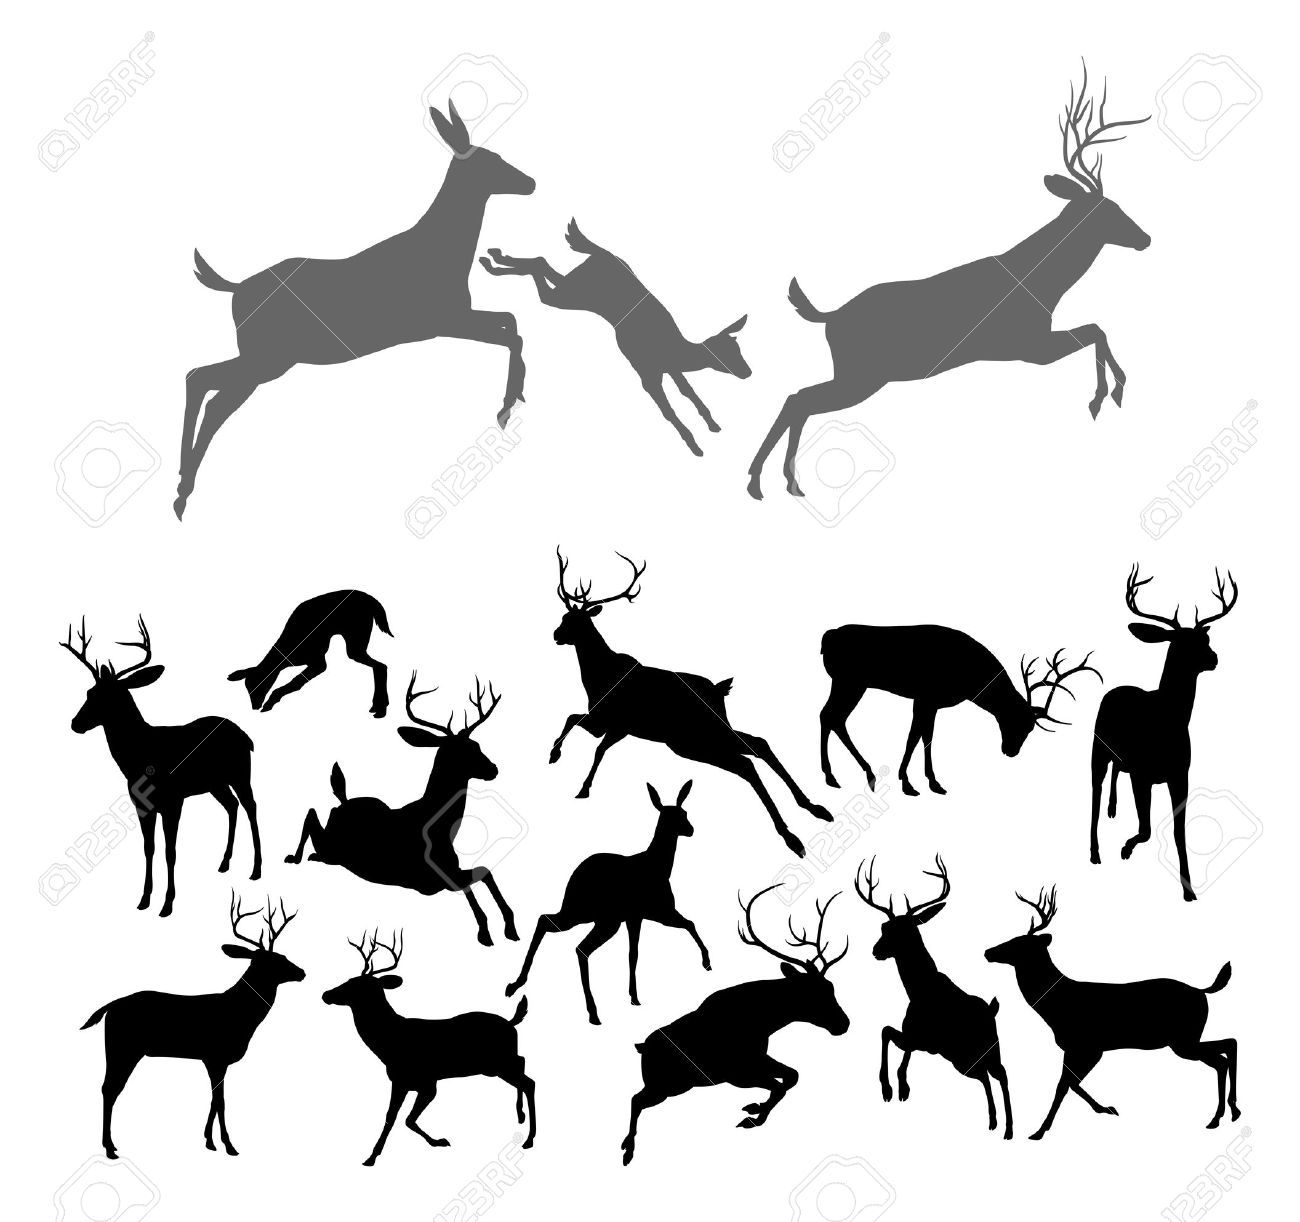 1300x1222 Deer Silhouettes Including Fawn, Doe Bucks And Stags In Various